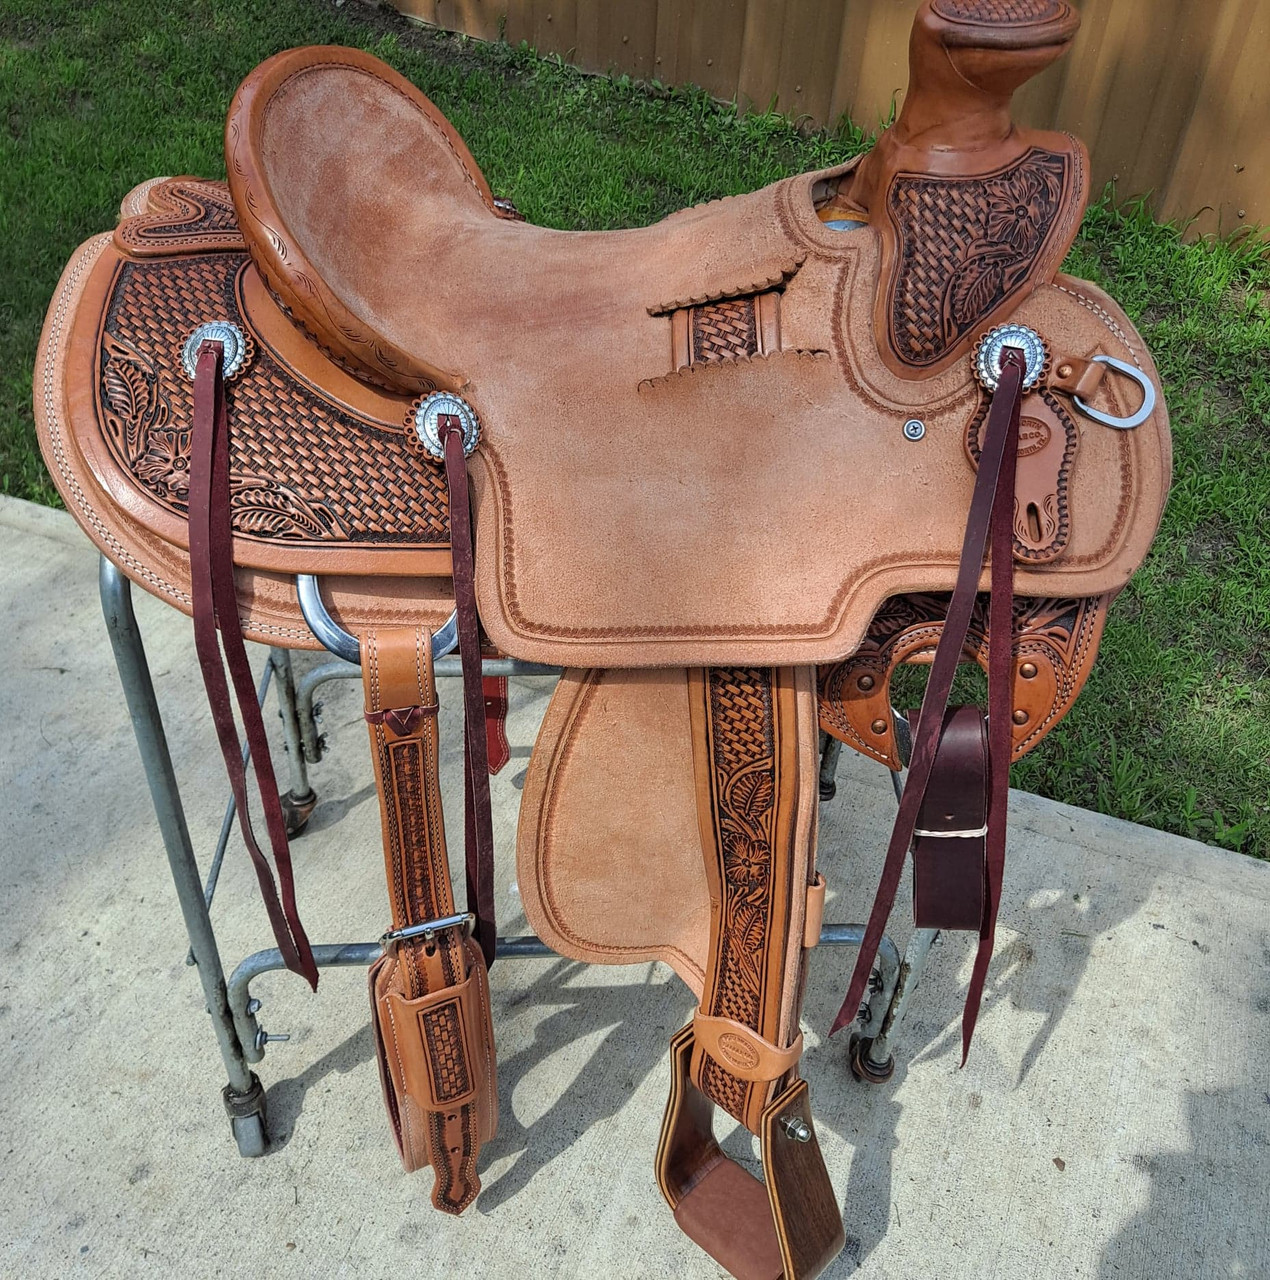 """New Wade Saddle by Fort Worth Saddle Co with 16 inch seat. Hermann Oak leather in light oil antique. 3"""" deep Don Orrell roper walnut stirrups. Tooled exposed stirrup leathers. Leather latigo and offside. Flank cinch included. Gullet size is 7 inch, weight is 38lbs, and skirt is 28.5 inch. Made in USA. Limited lifetime warranty.  S1302"""